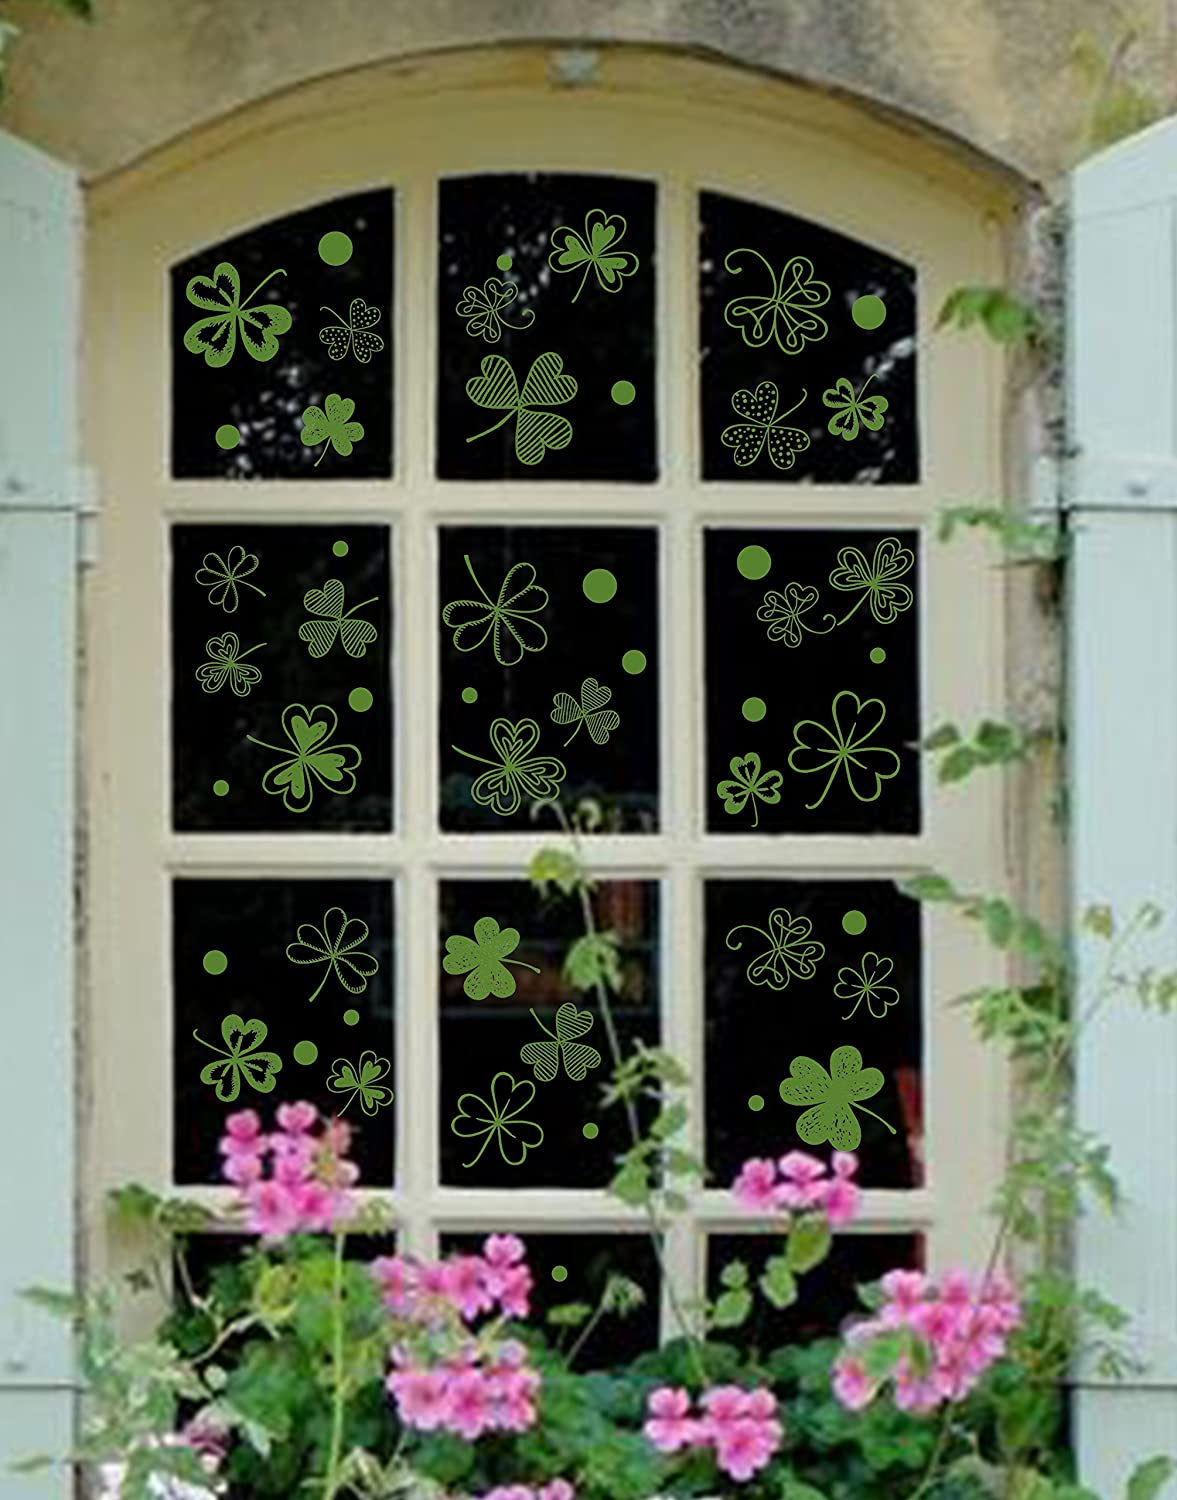 102 PCS St Patrick's Day Decorations Shamrock Window Clings Clover Static Decal Stickers -- Party Ornaments Moon Boat MB-SPTWC310